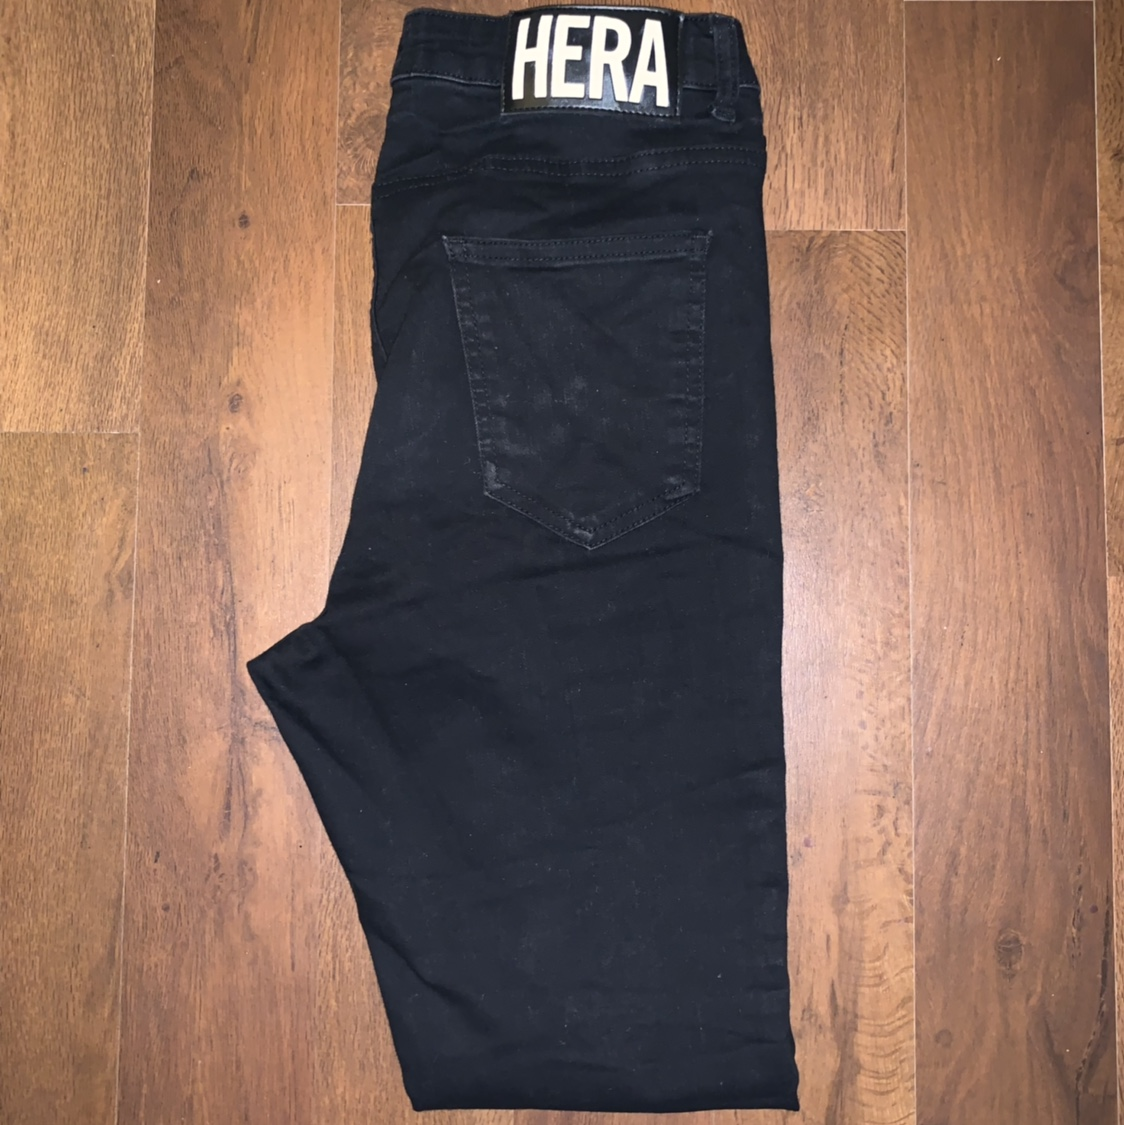 Mens Black paint splatter HERA LONDON jeans. Size Depop